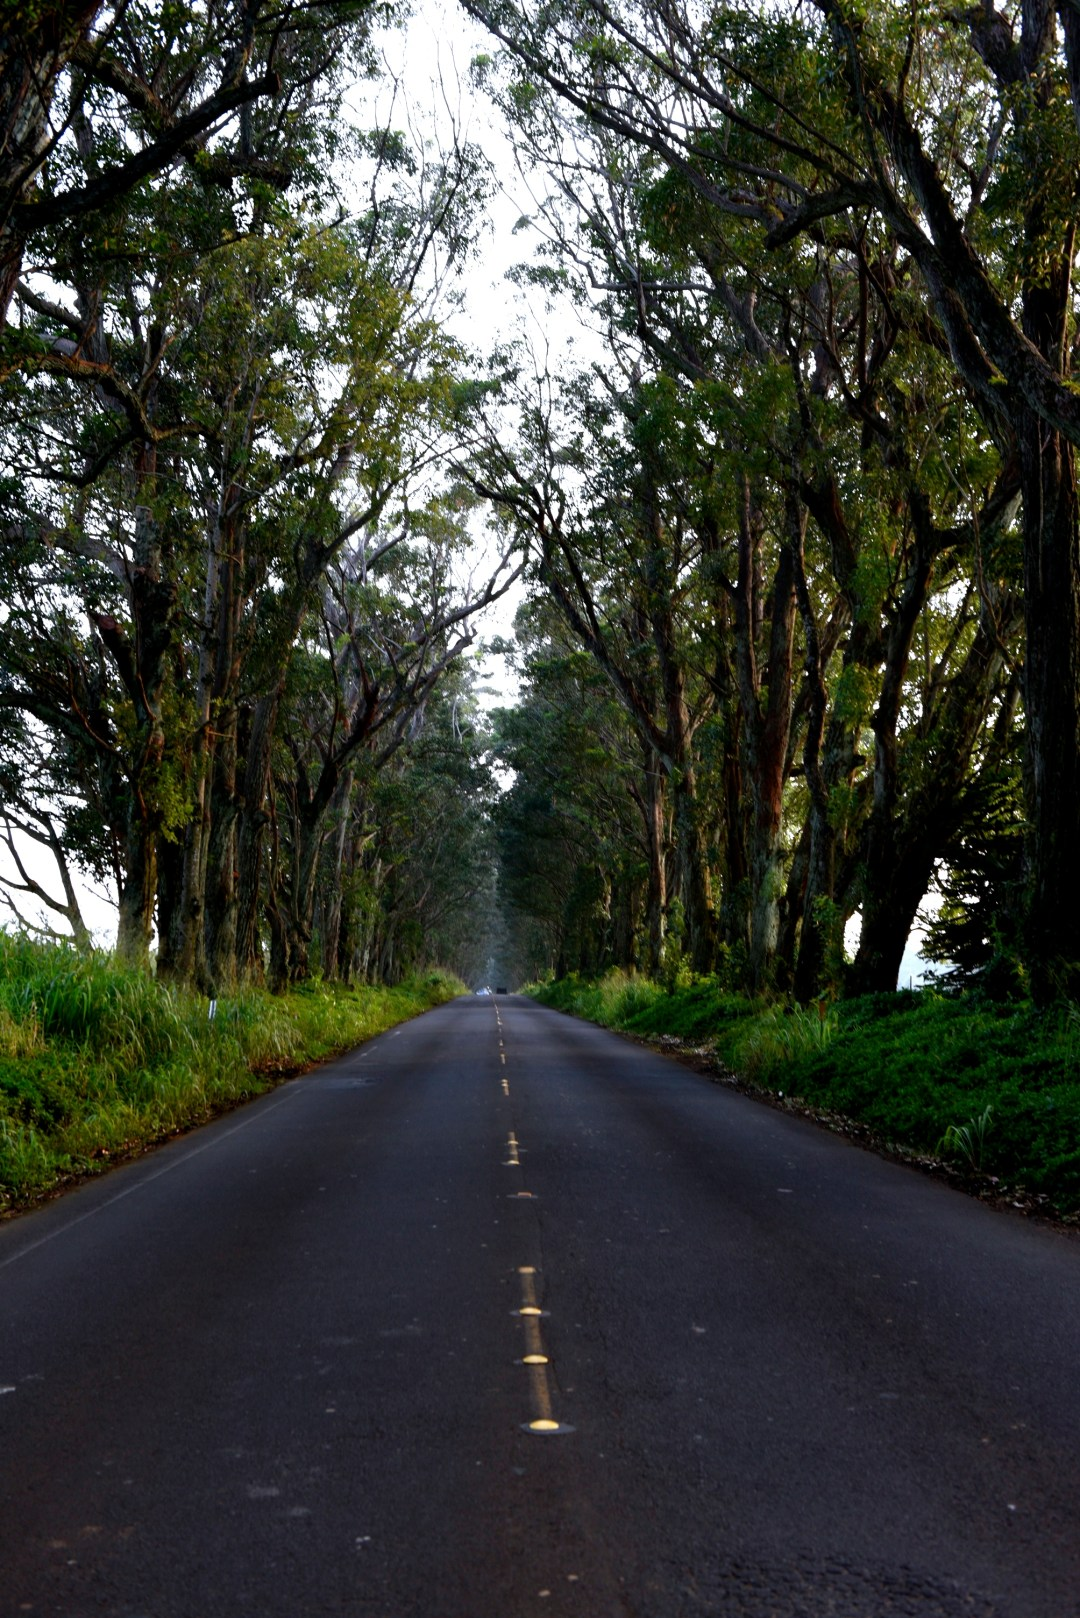 """The Tree Tunnel"" - John Wayne, in the movie Donovan's Reef, races a jeep though this eucalyptus lined road."